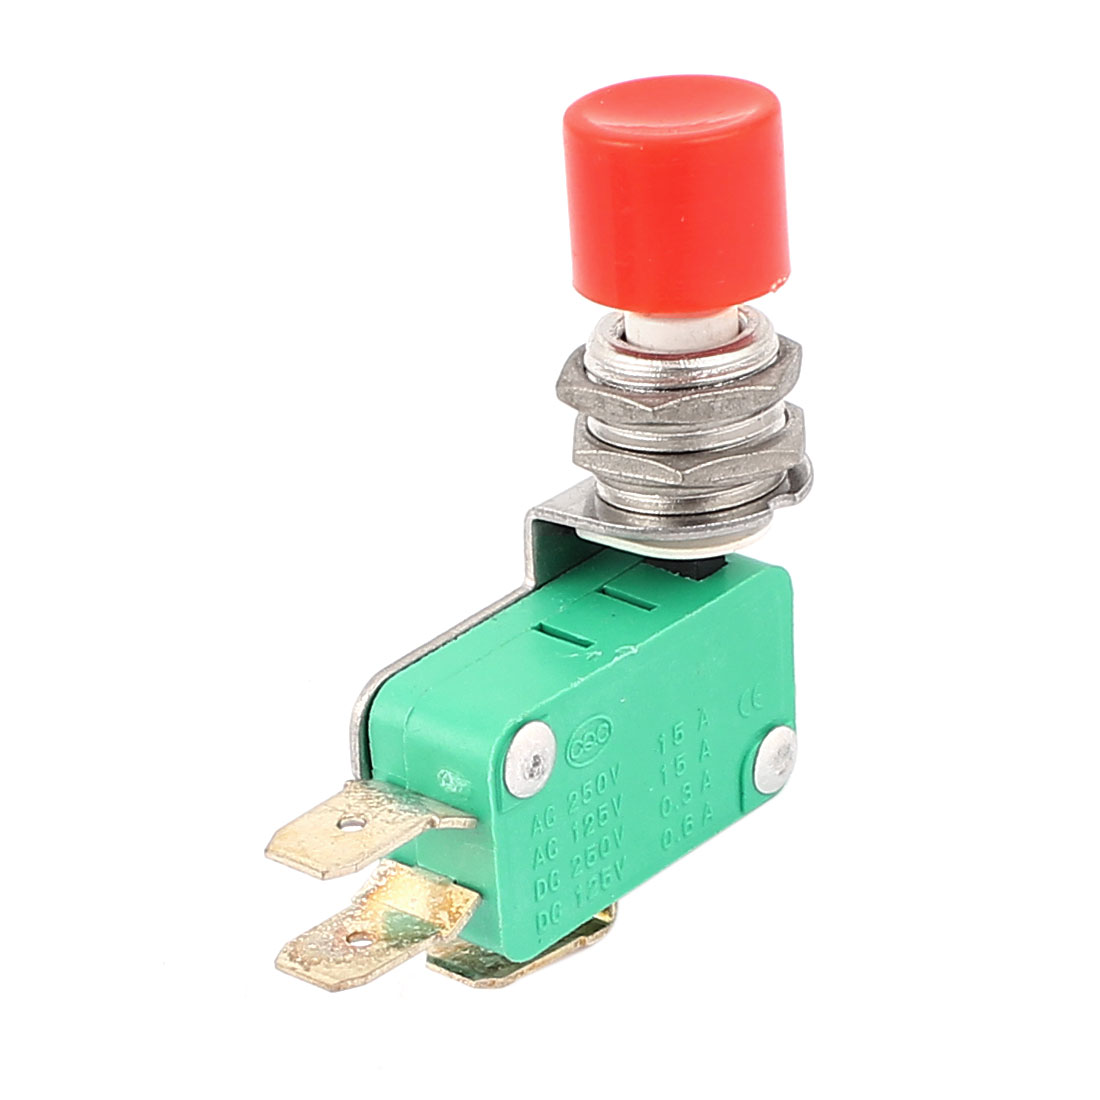 AC125/250V 15A NO/NC 3 Terminal Push Button Momentary AC DC Micro Limit Switch